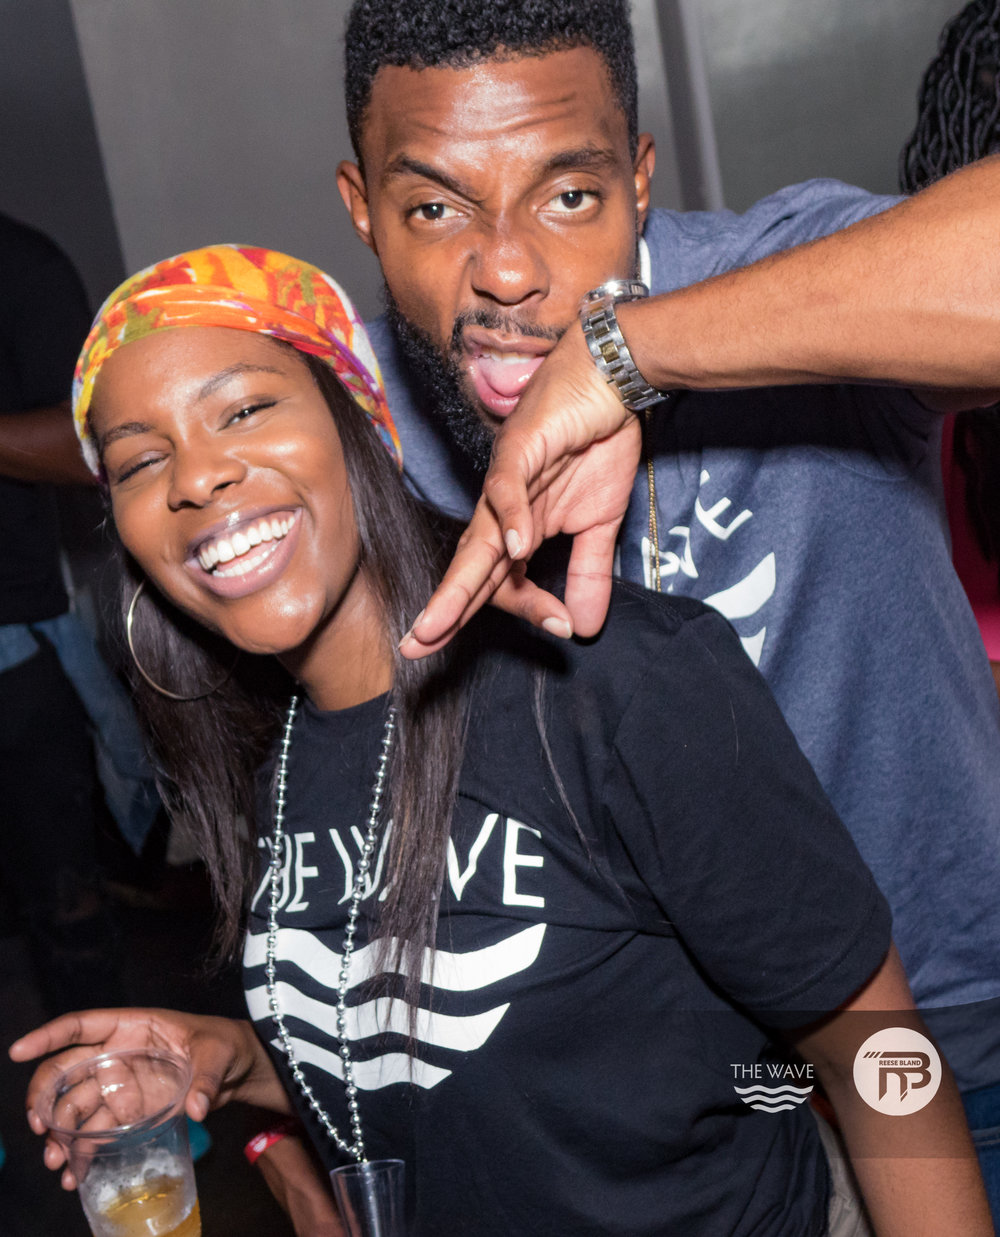 RB-WaveDC-BlkBarCrawl2-01214.jpg